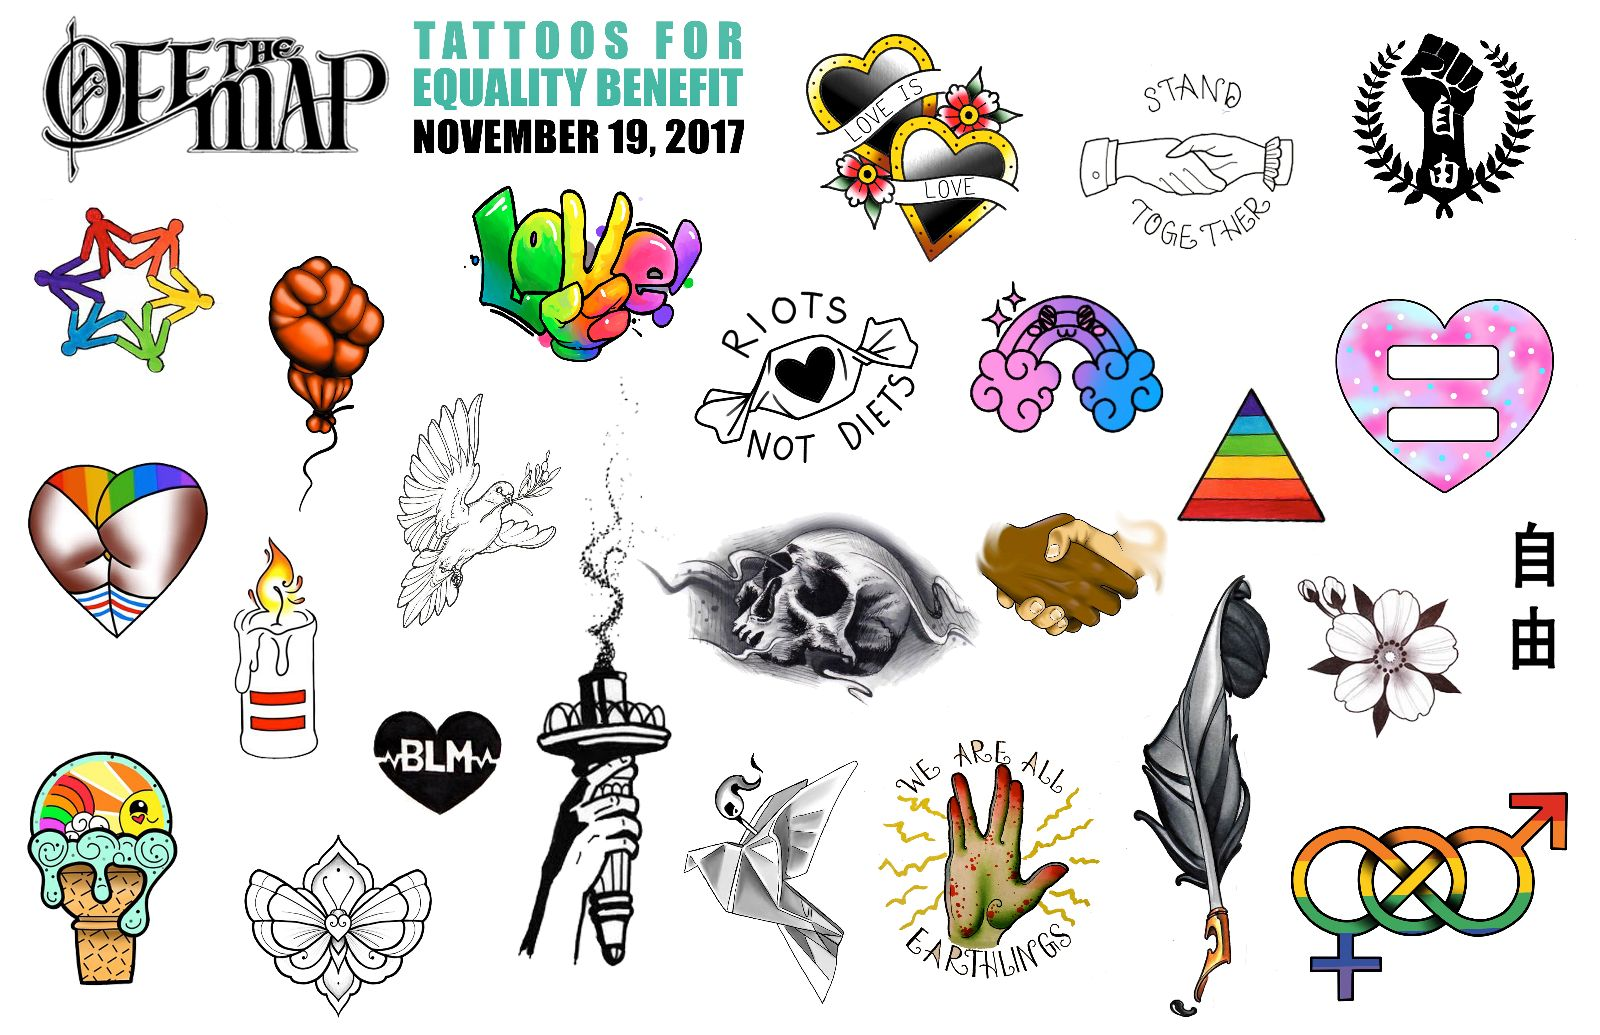 Tattoos for equality benefit day